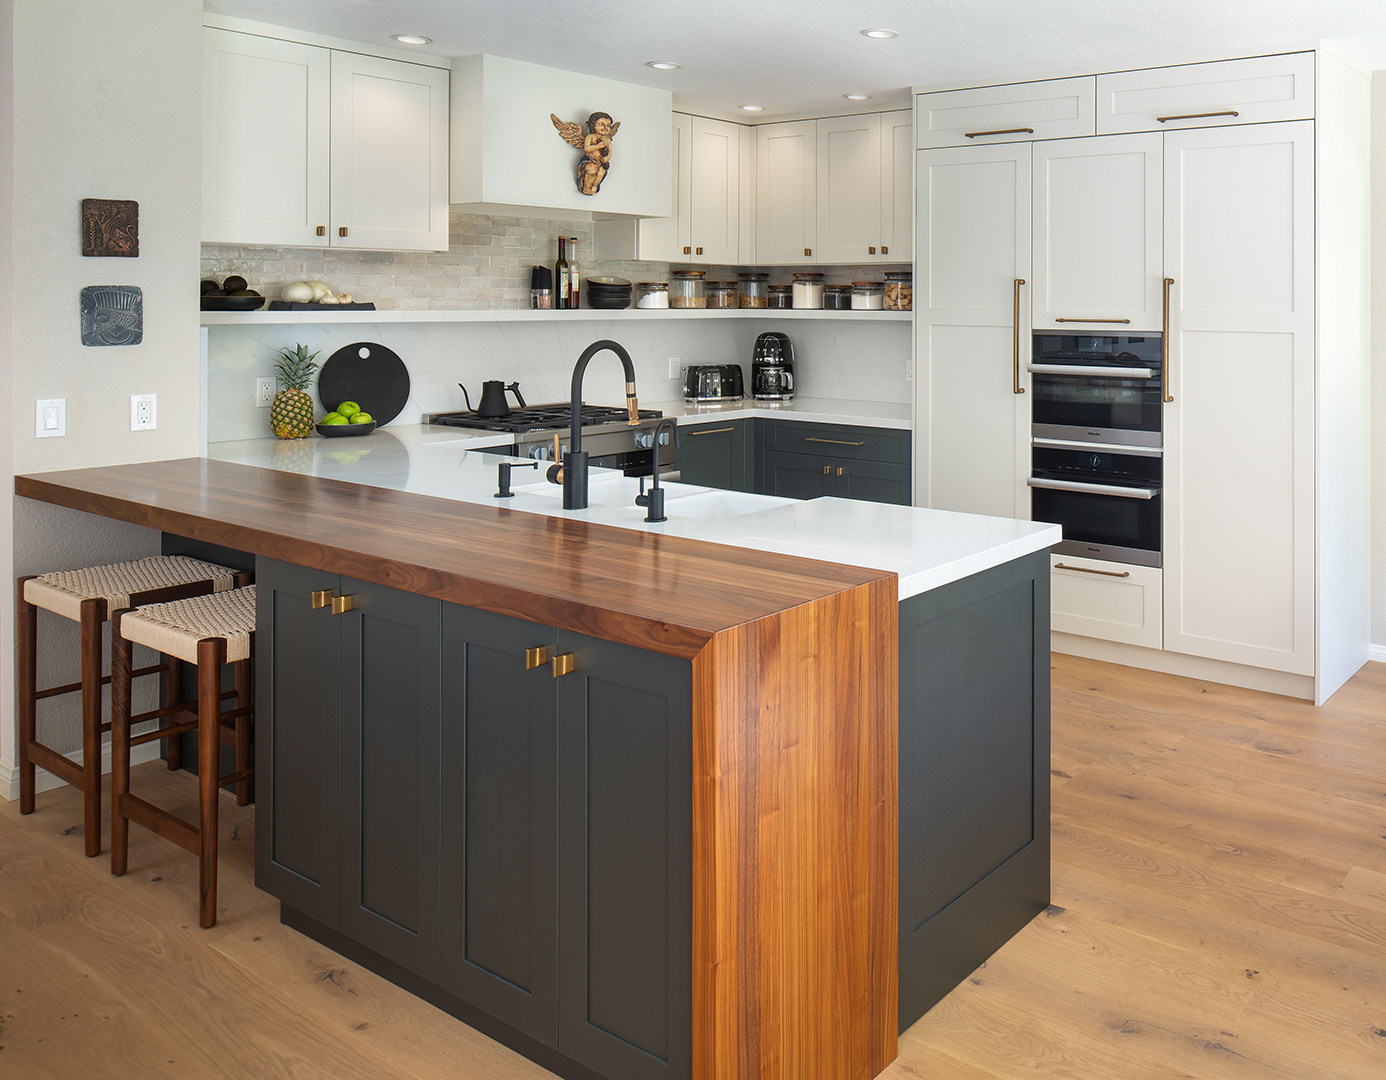 All Heartwood Walnut Half Pastore Top for a Kitchen in San Diego, California